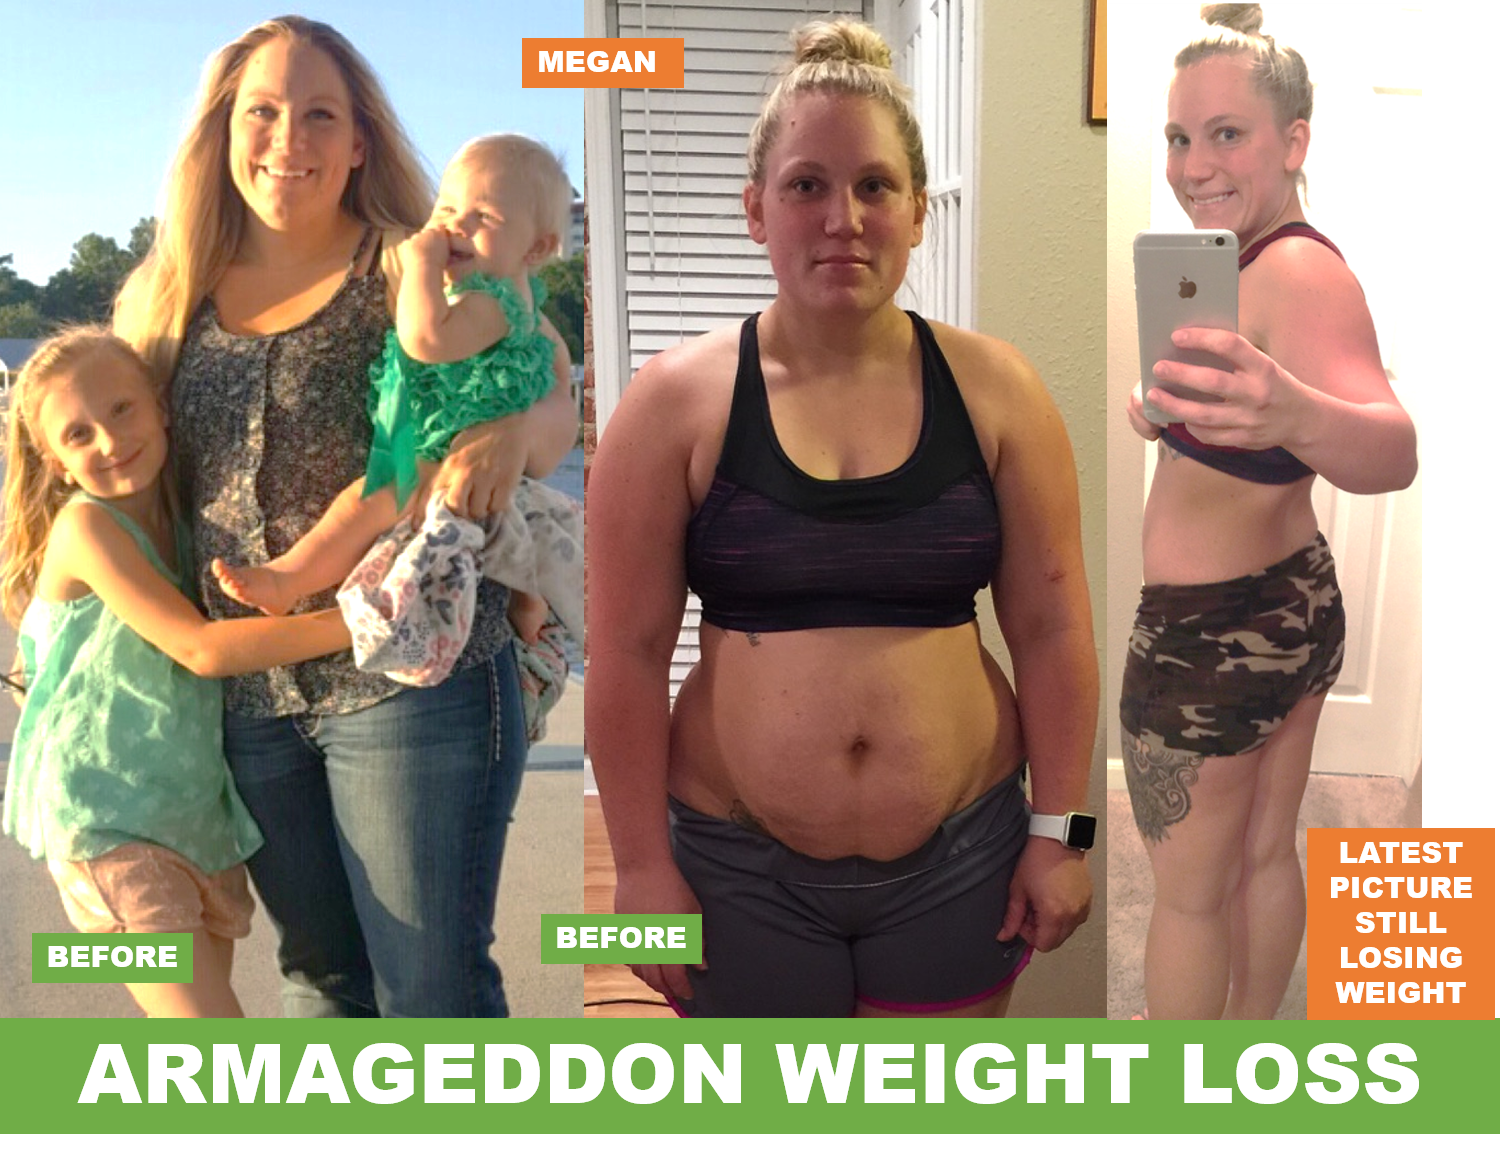 Megan green florida armageddon weight loss program best weight loss megan green florida armageddon weight loss program best weight loss dvd for women post pregnancy weight best exercise dvd for women best weight loss after ccuart Gallery